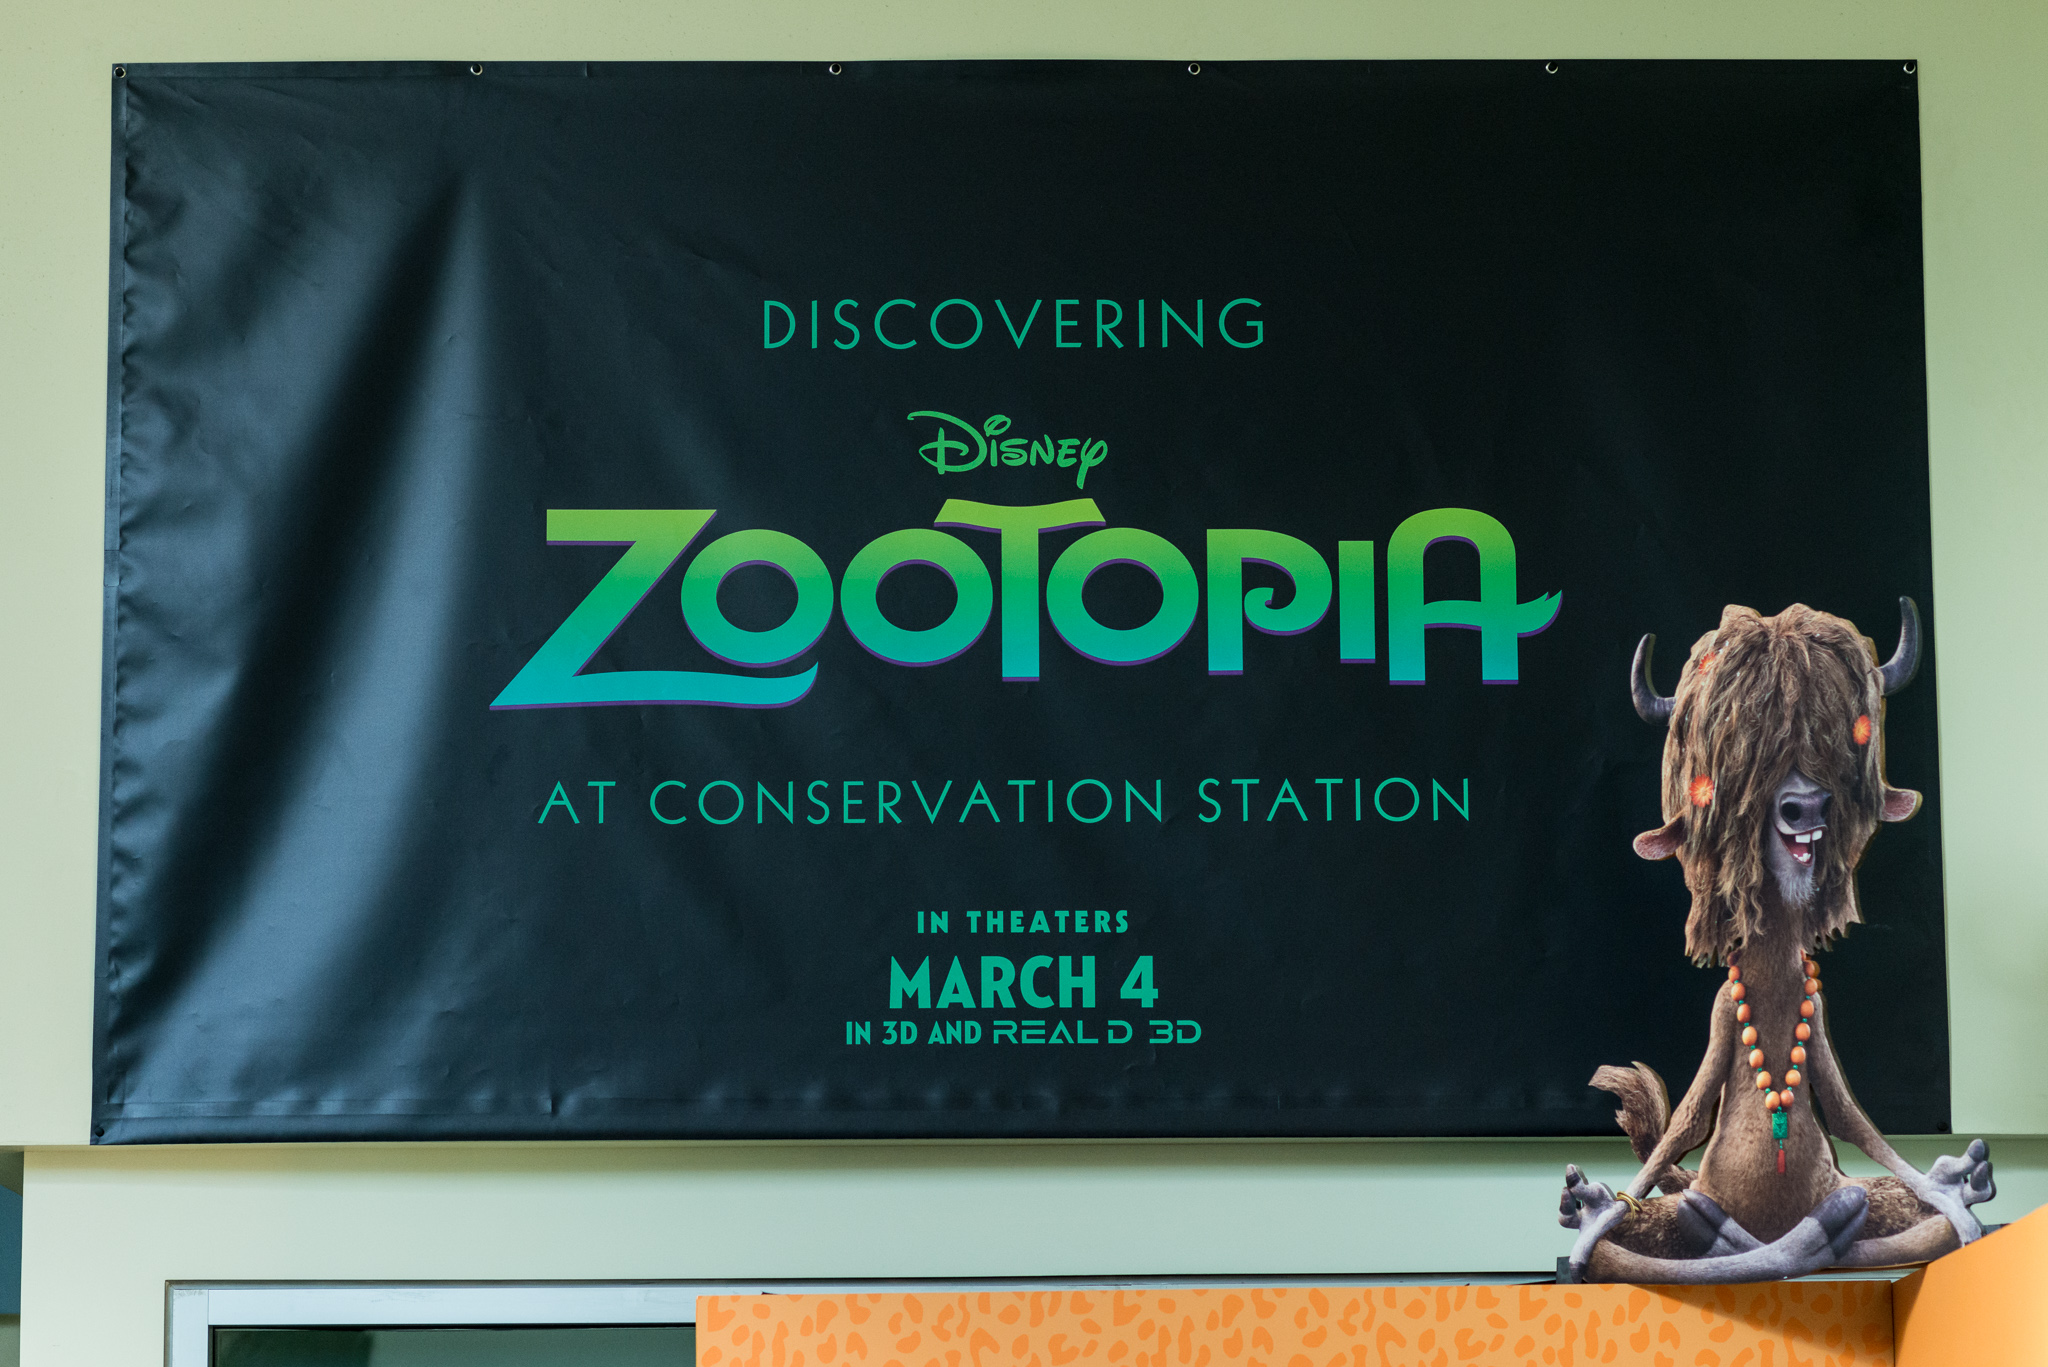 Discovering Zootopia at Conversation Station - Disney's Animal Kingdom